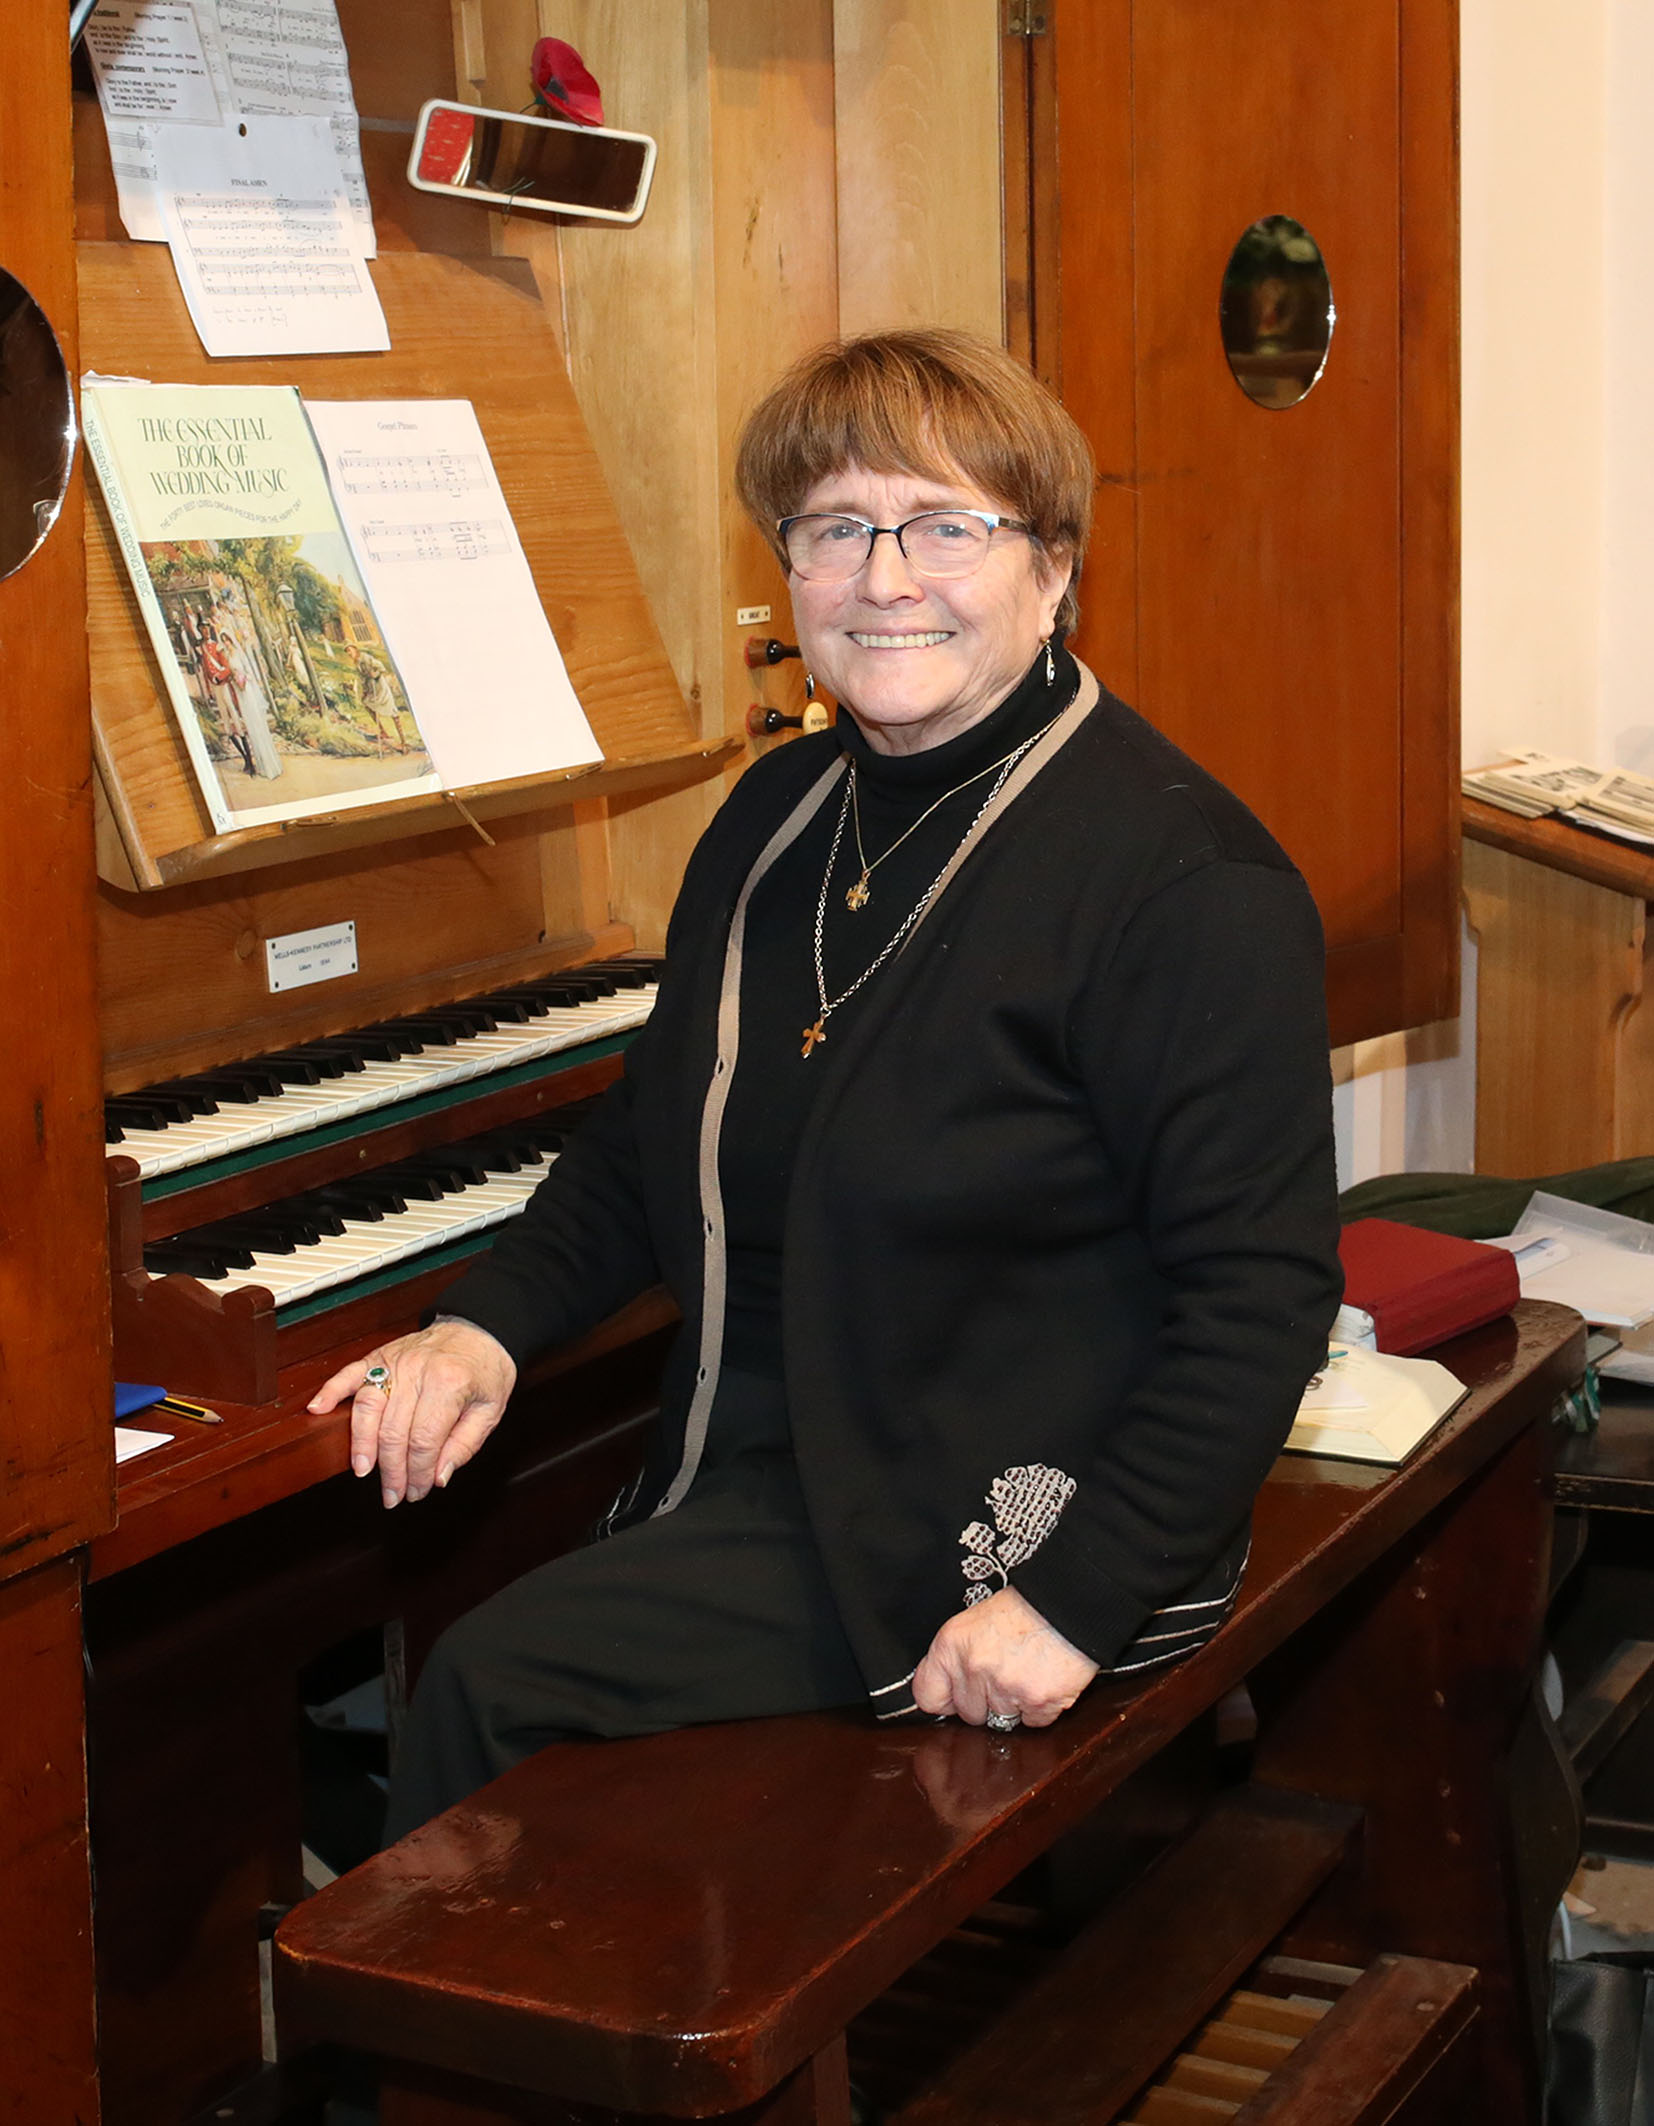 Valerie Ireland enjoying her temporary role as church organist at today's family service.